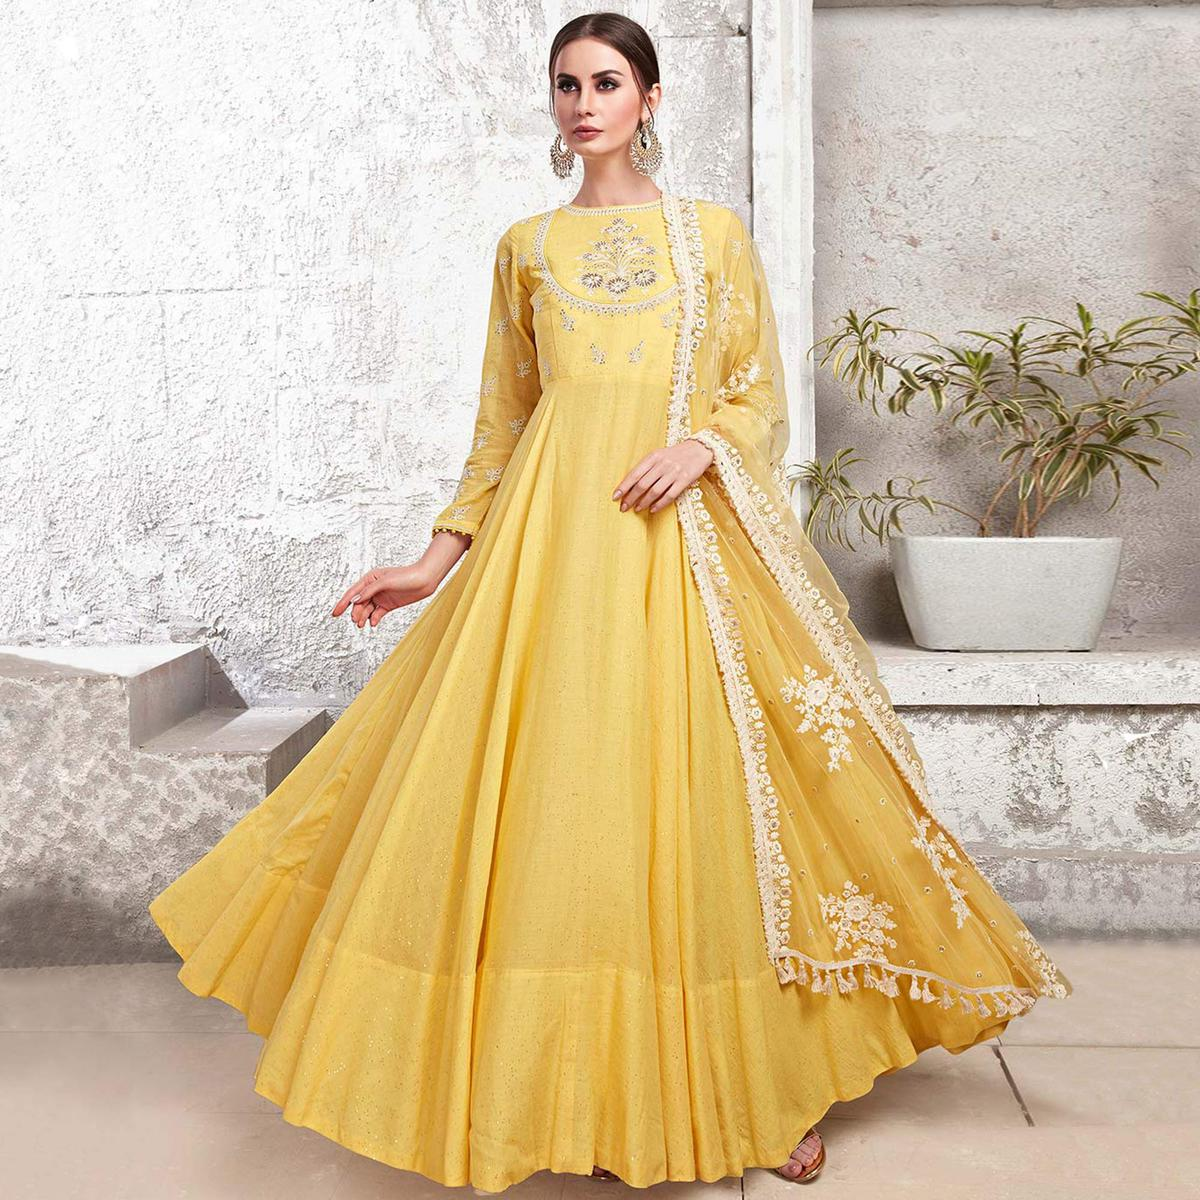 Marvellous Yellow Colored Partywear Embroidered Cotton Anarkali Suit